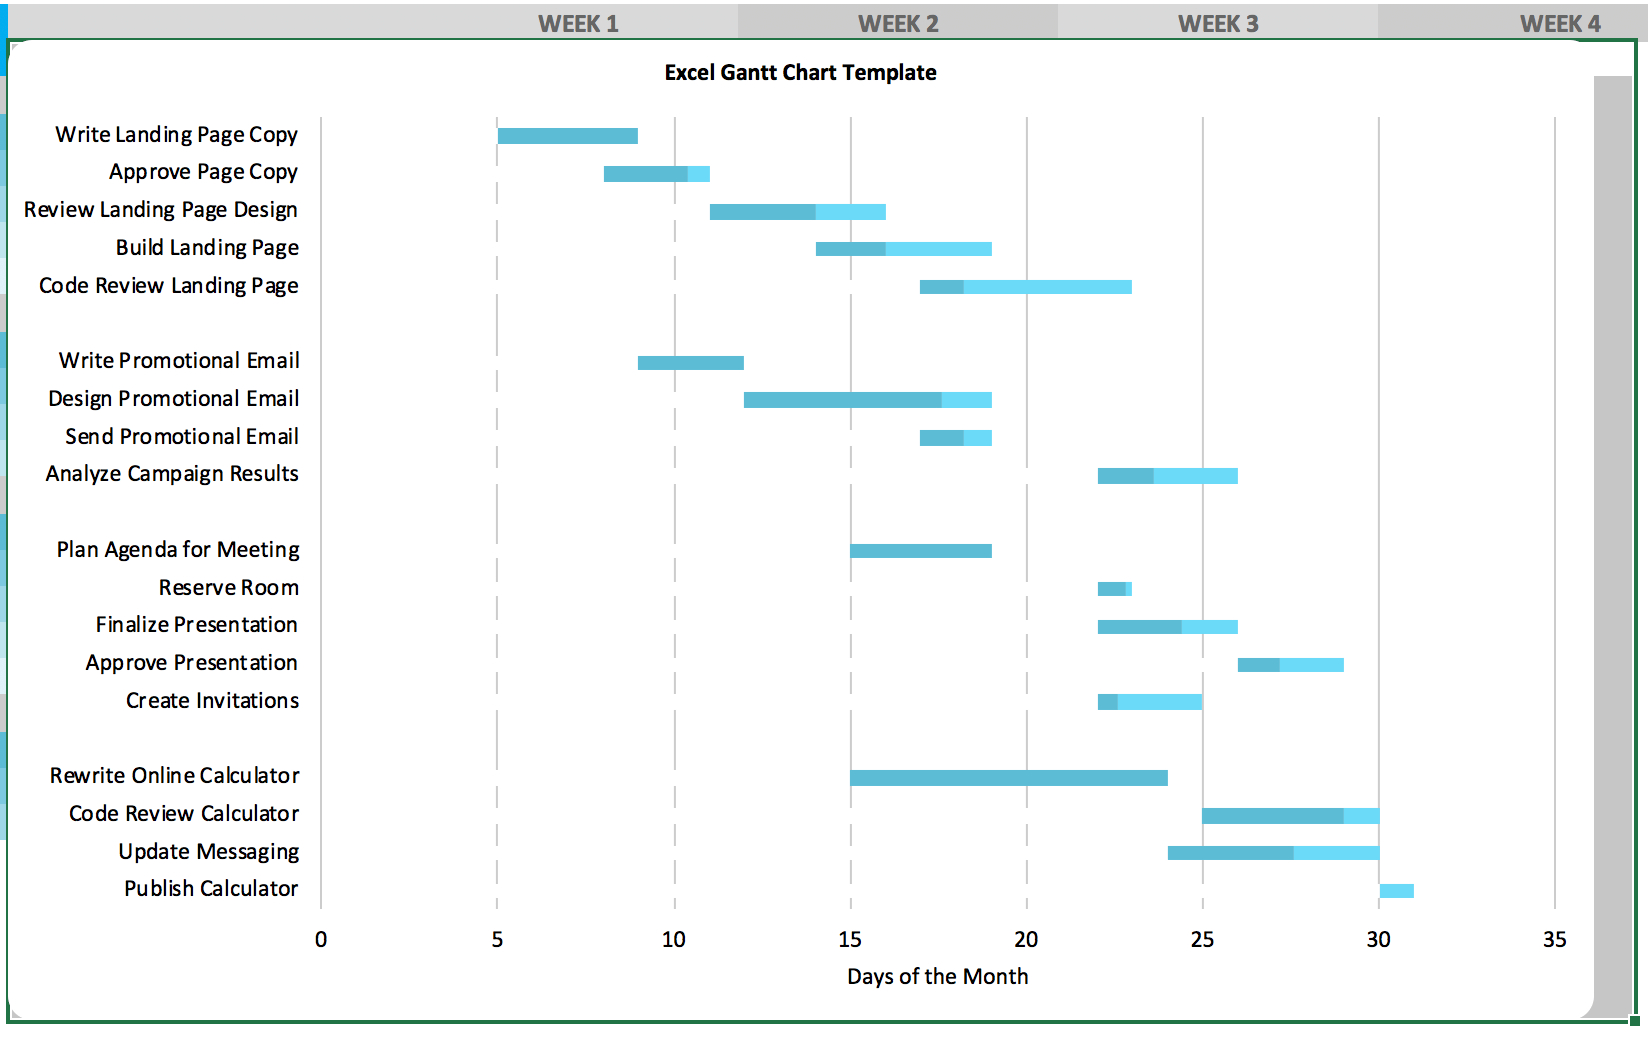 Free Gantt Chart Excel Template: Download Now   Teamgantt Inside Gantt Chart Template Excel